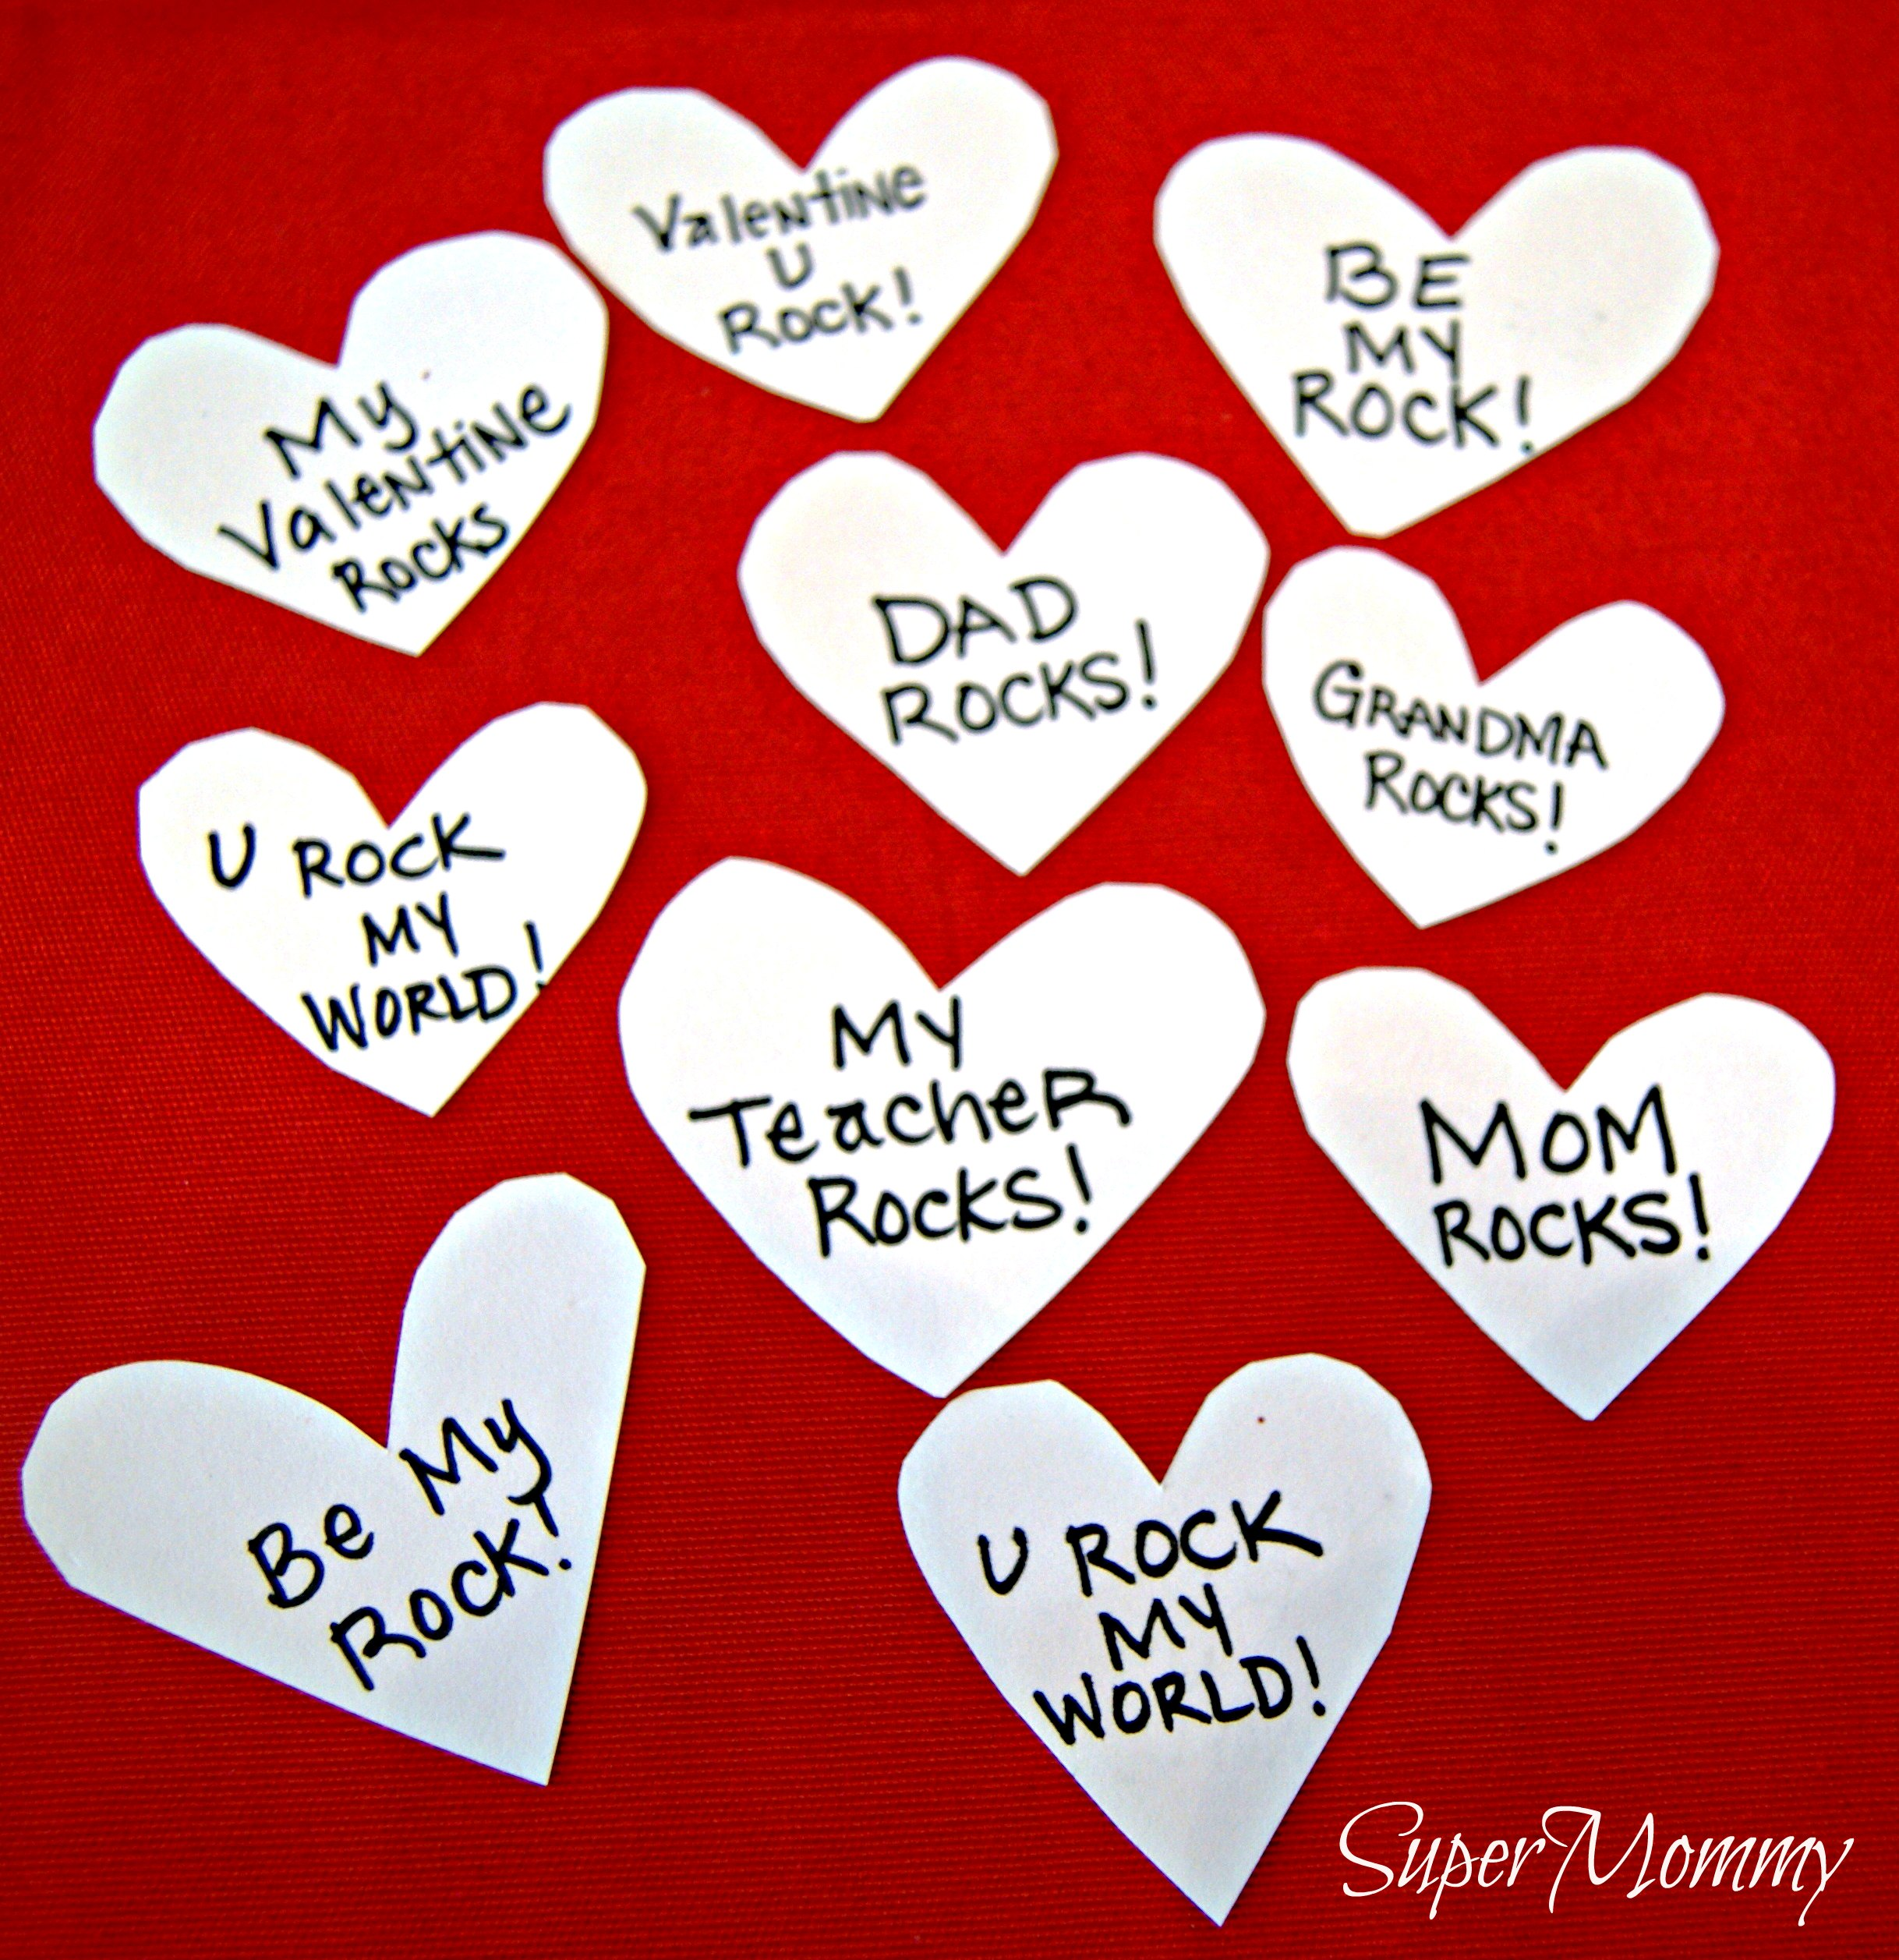 You Rock my world  A unique Valentines card idea